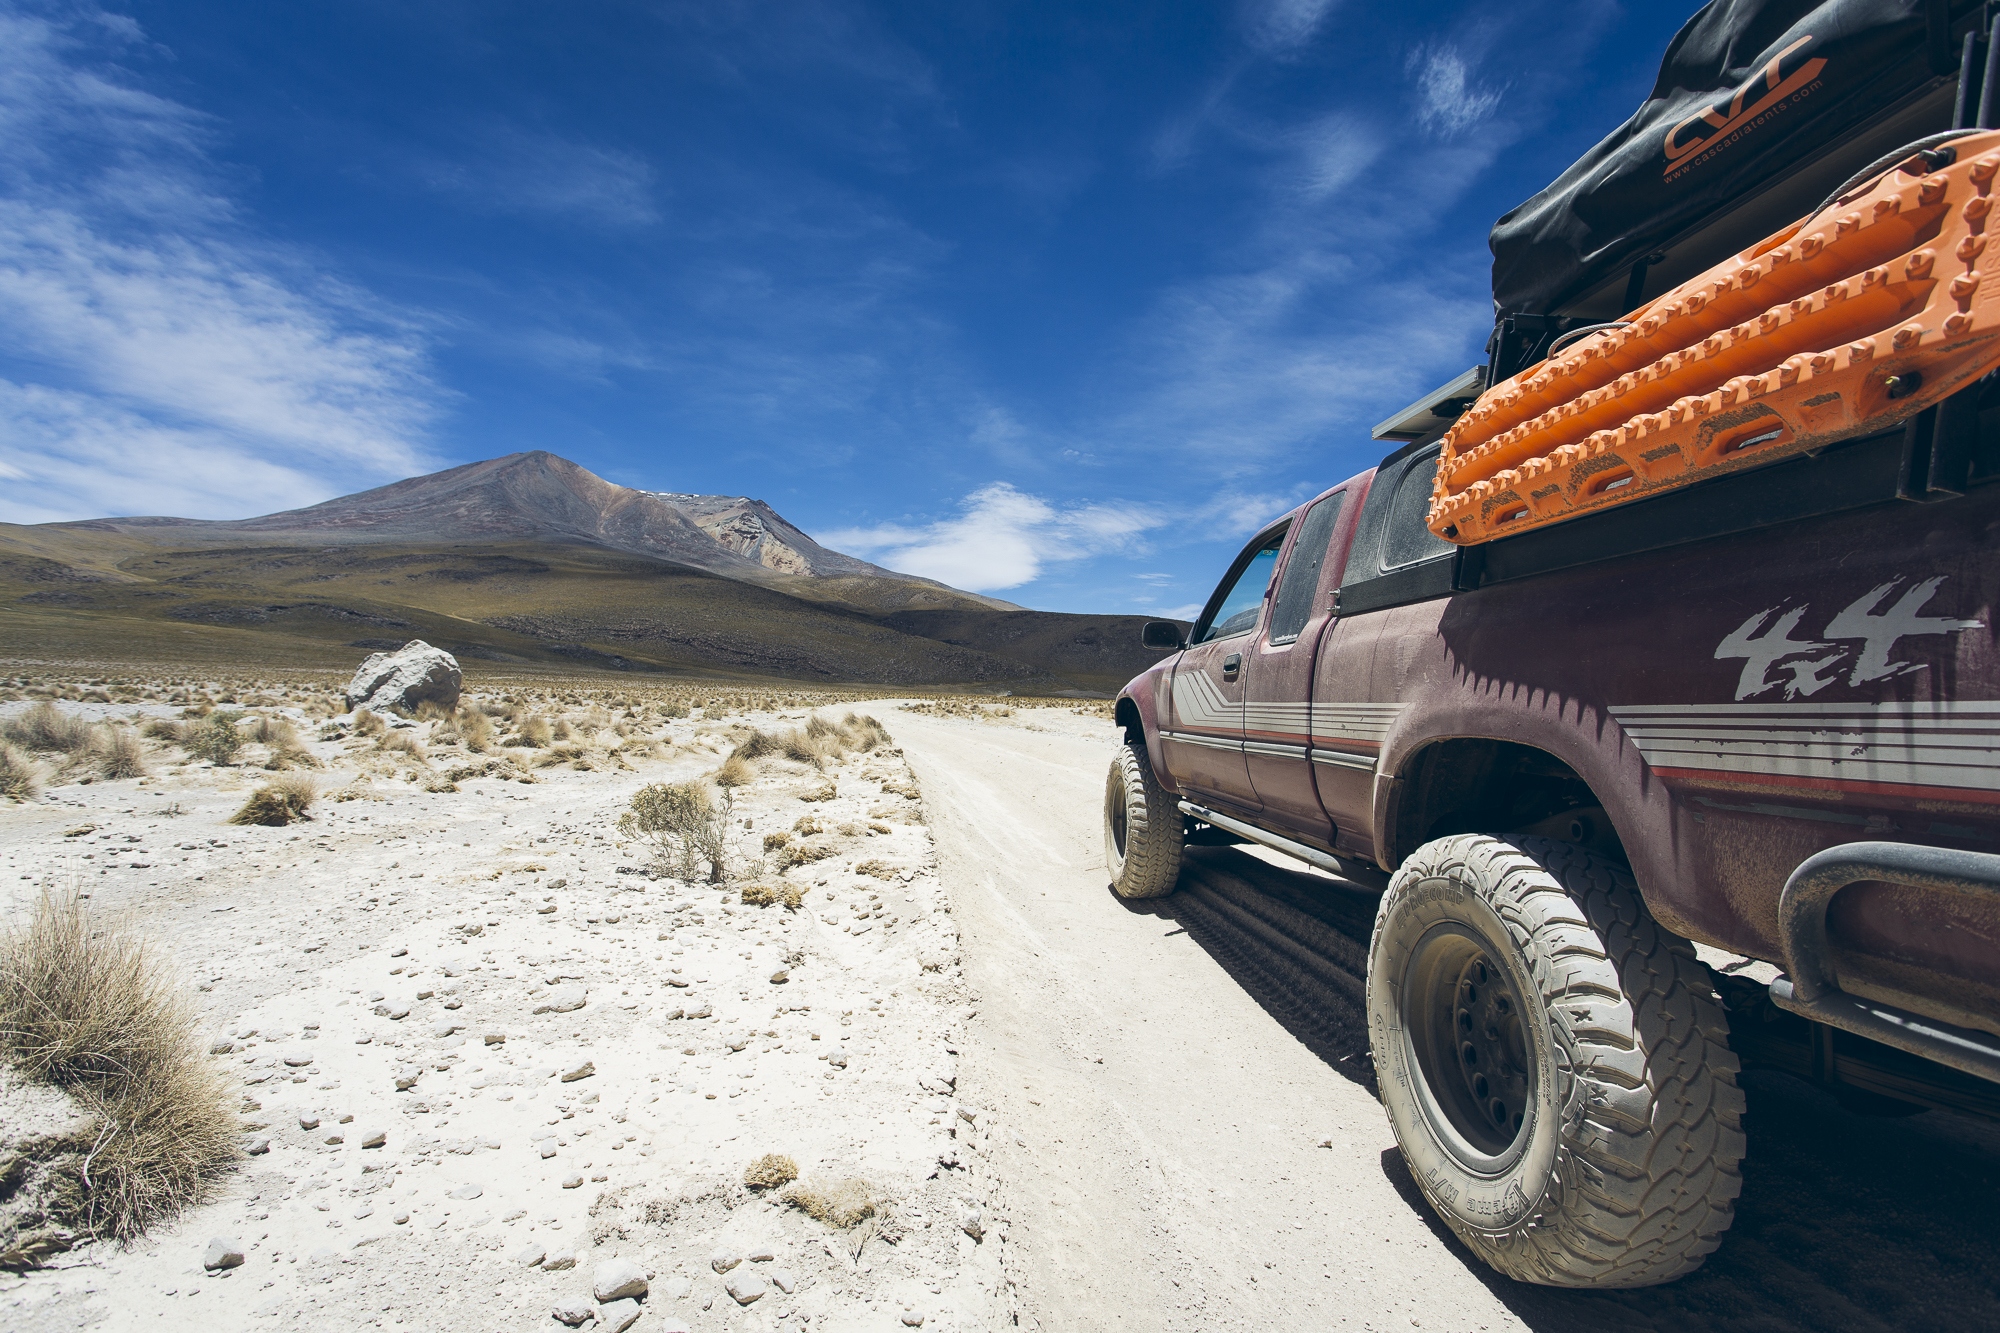 d2g_expo_lagunas_route_day_2-3